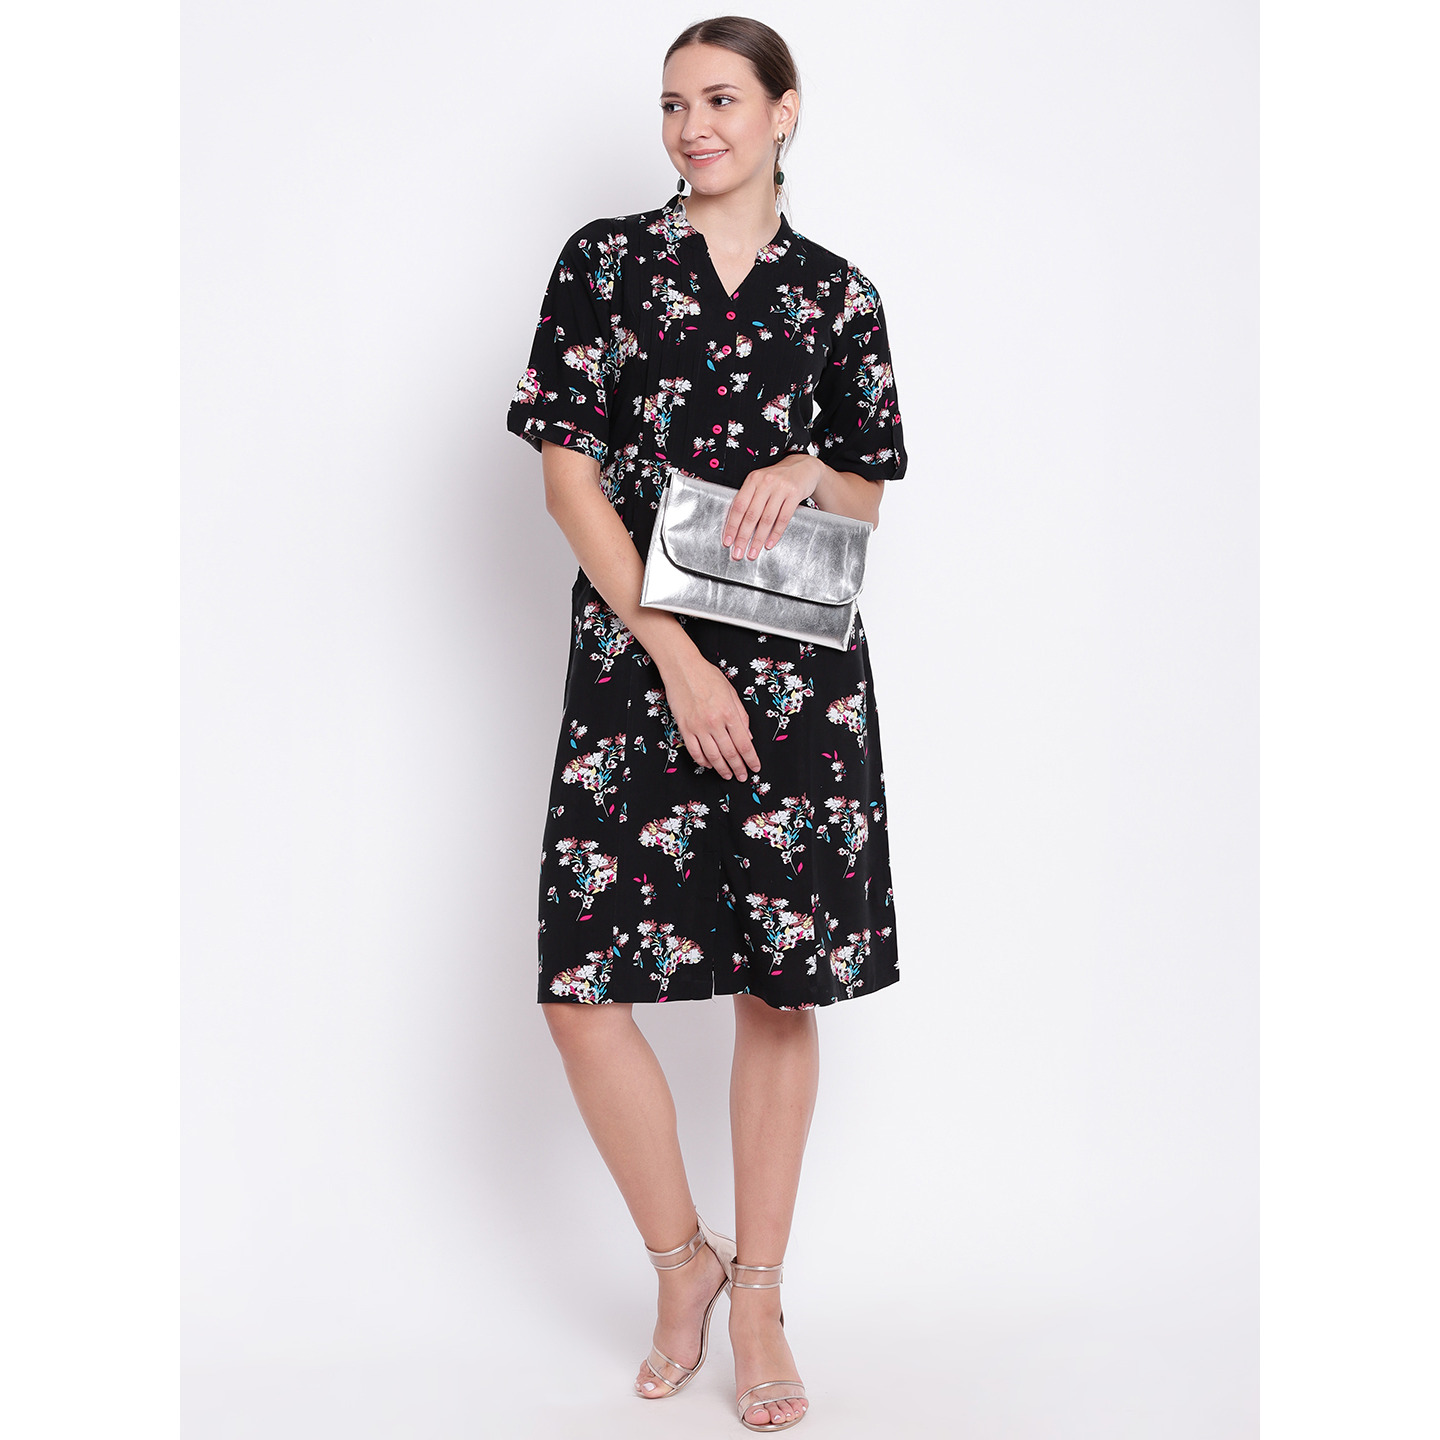 Ayaany Women's Fashion Black Floral Print A-Line Dress